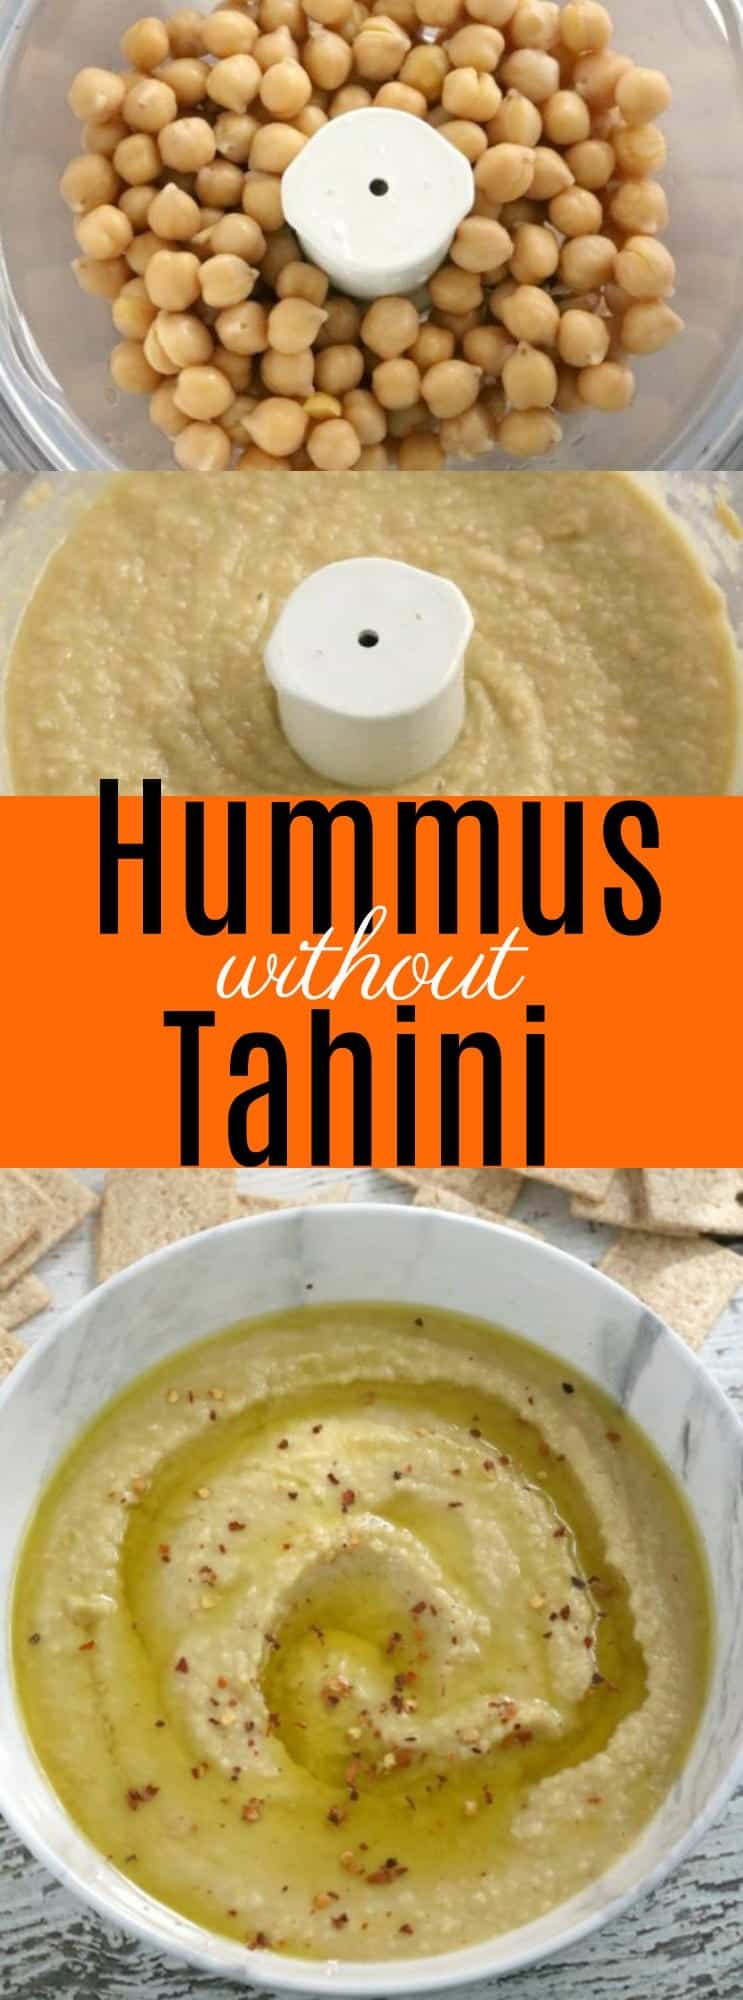 Hummus is a quick and healthy snack but can be expensive. This Hummus without Tahini is creamy and smooth and won't break the bank! #Hummus #without #tahini #Mediterranean #Recipe